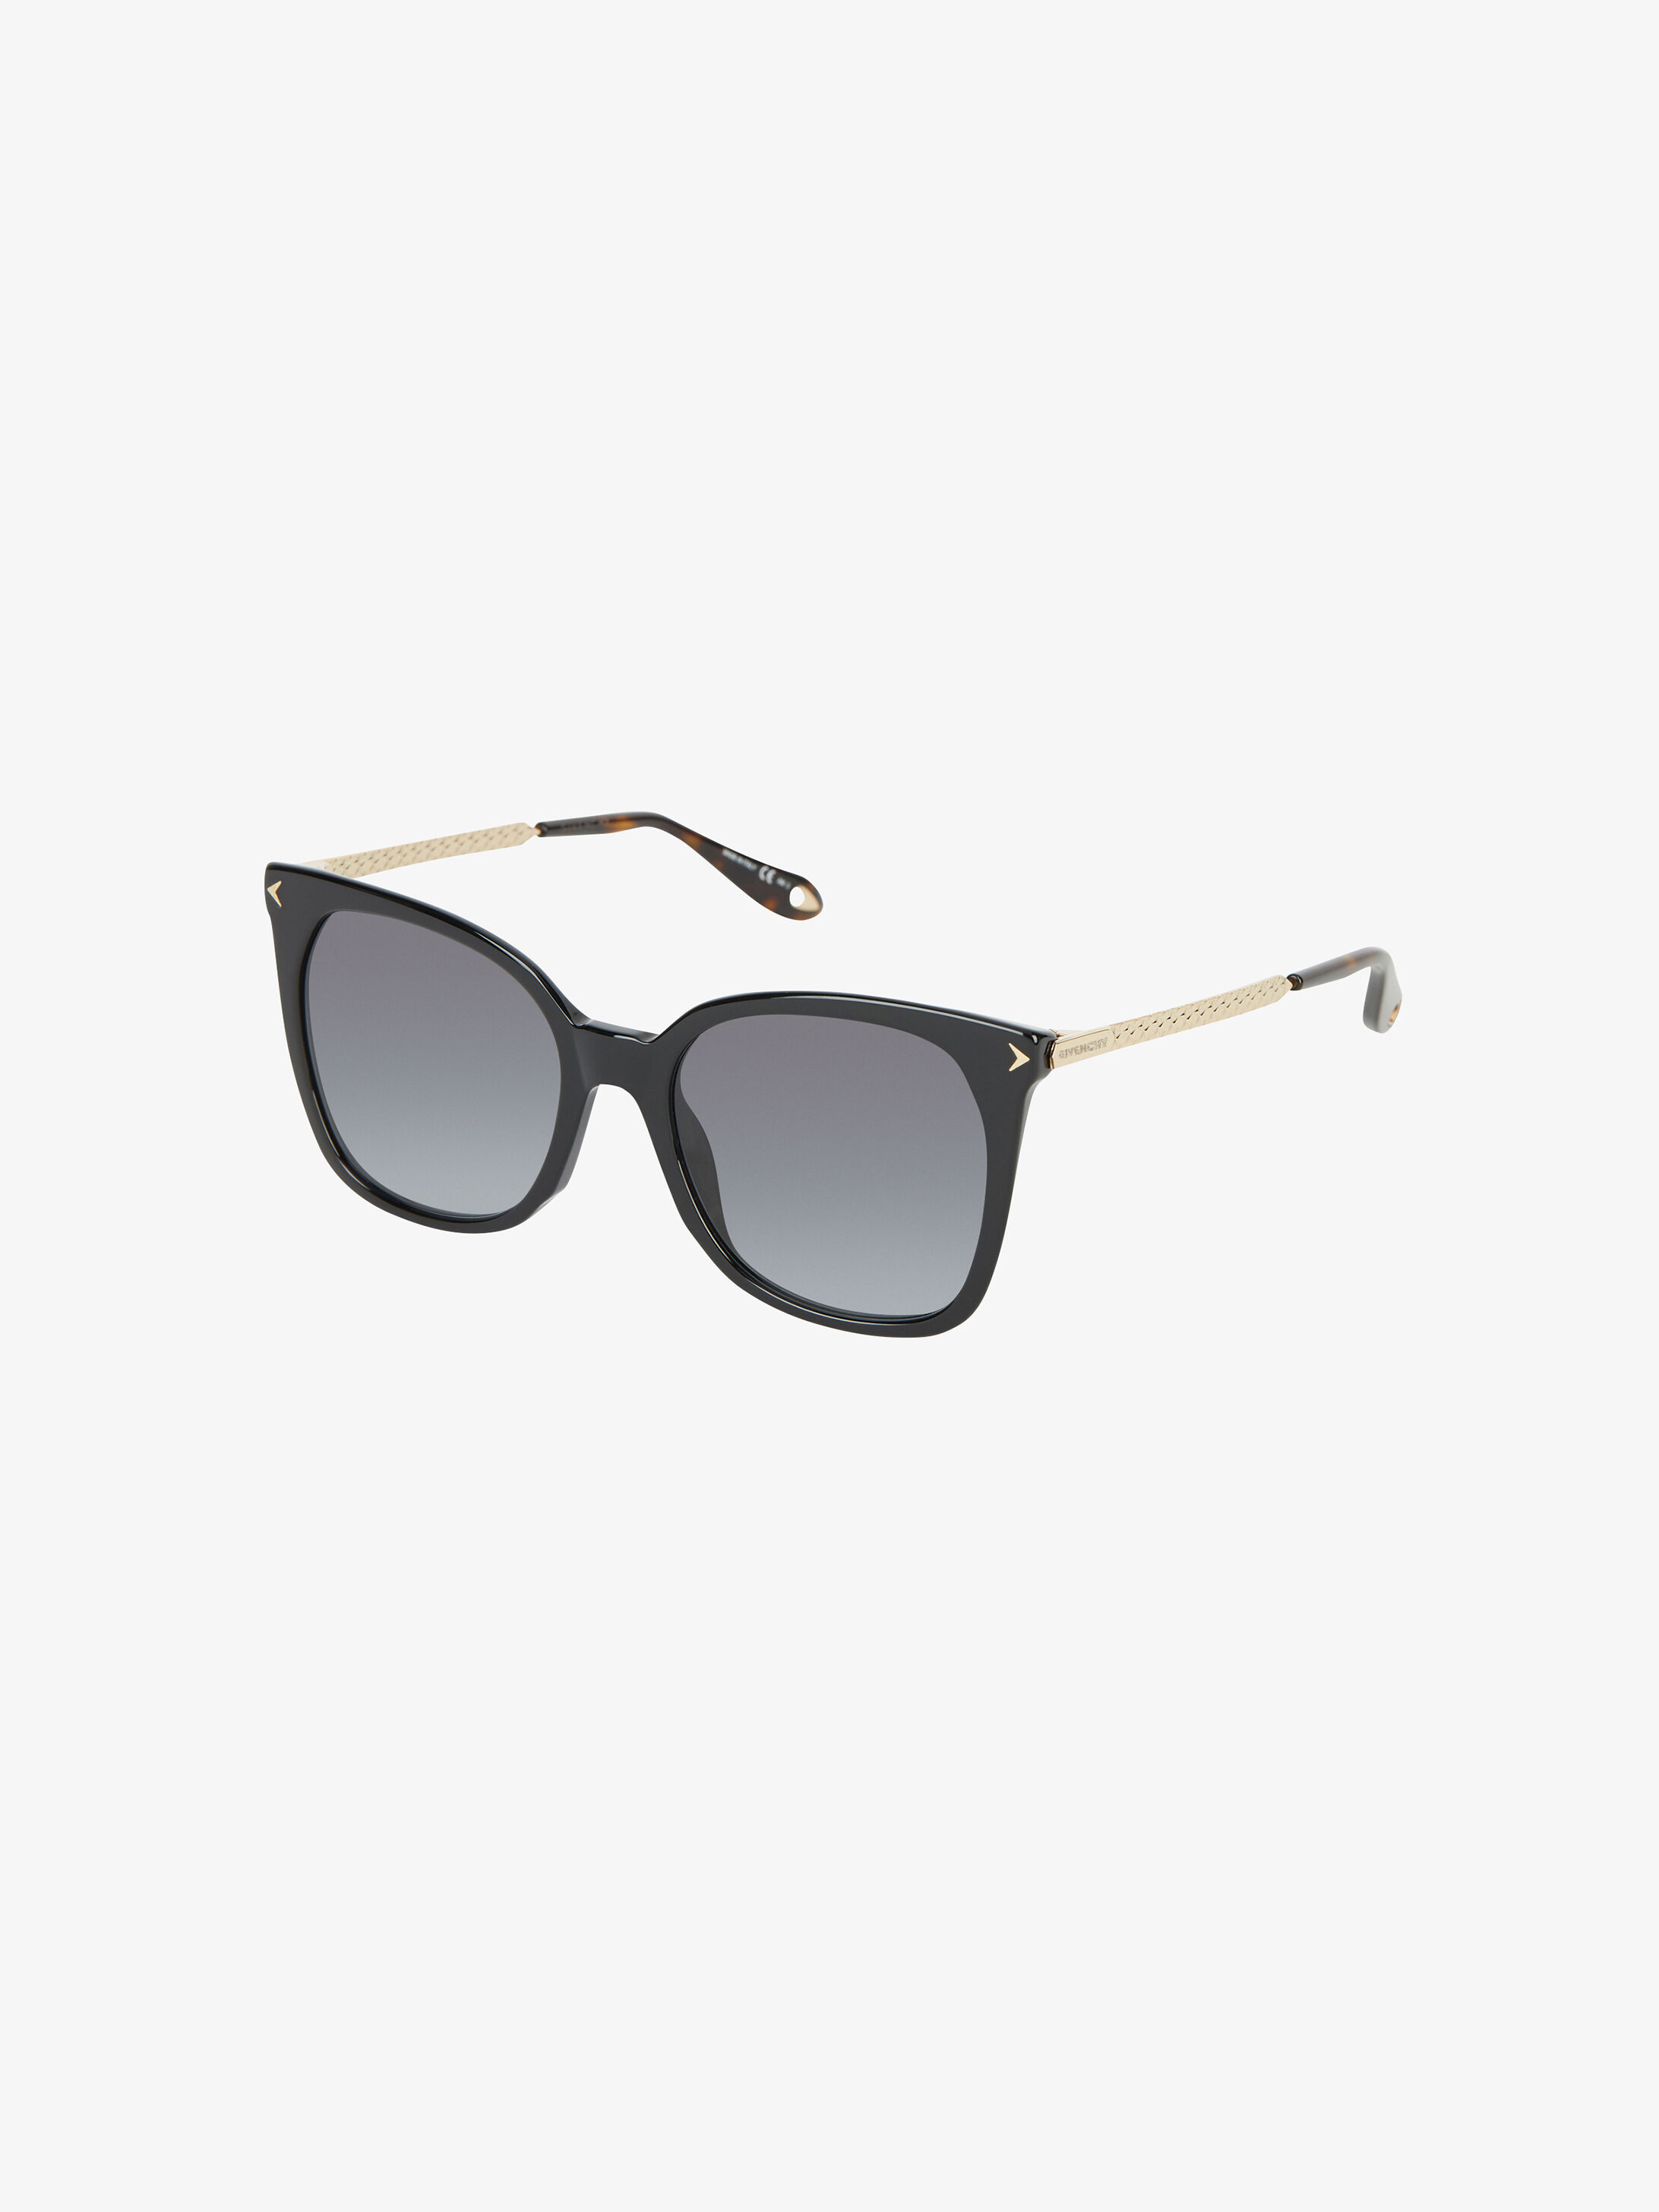 2fb7b6685c Women s Sunglasses collection by Givenchy.